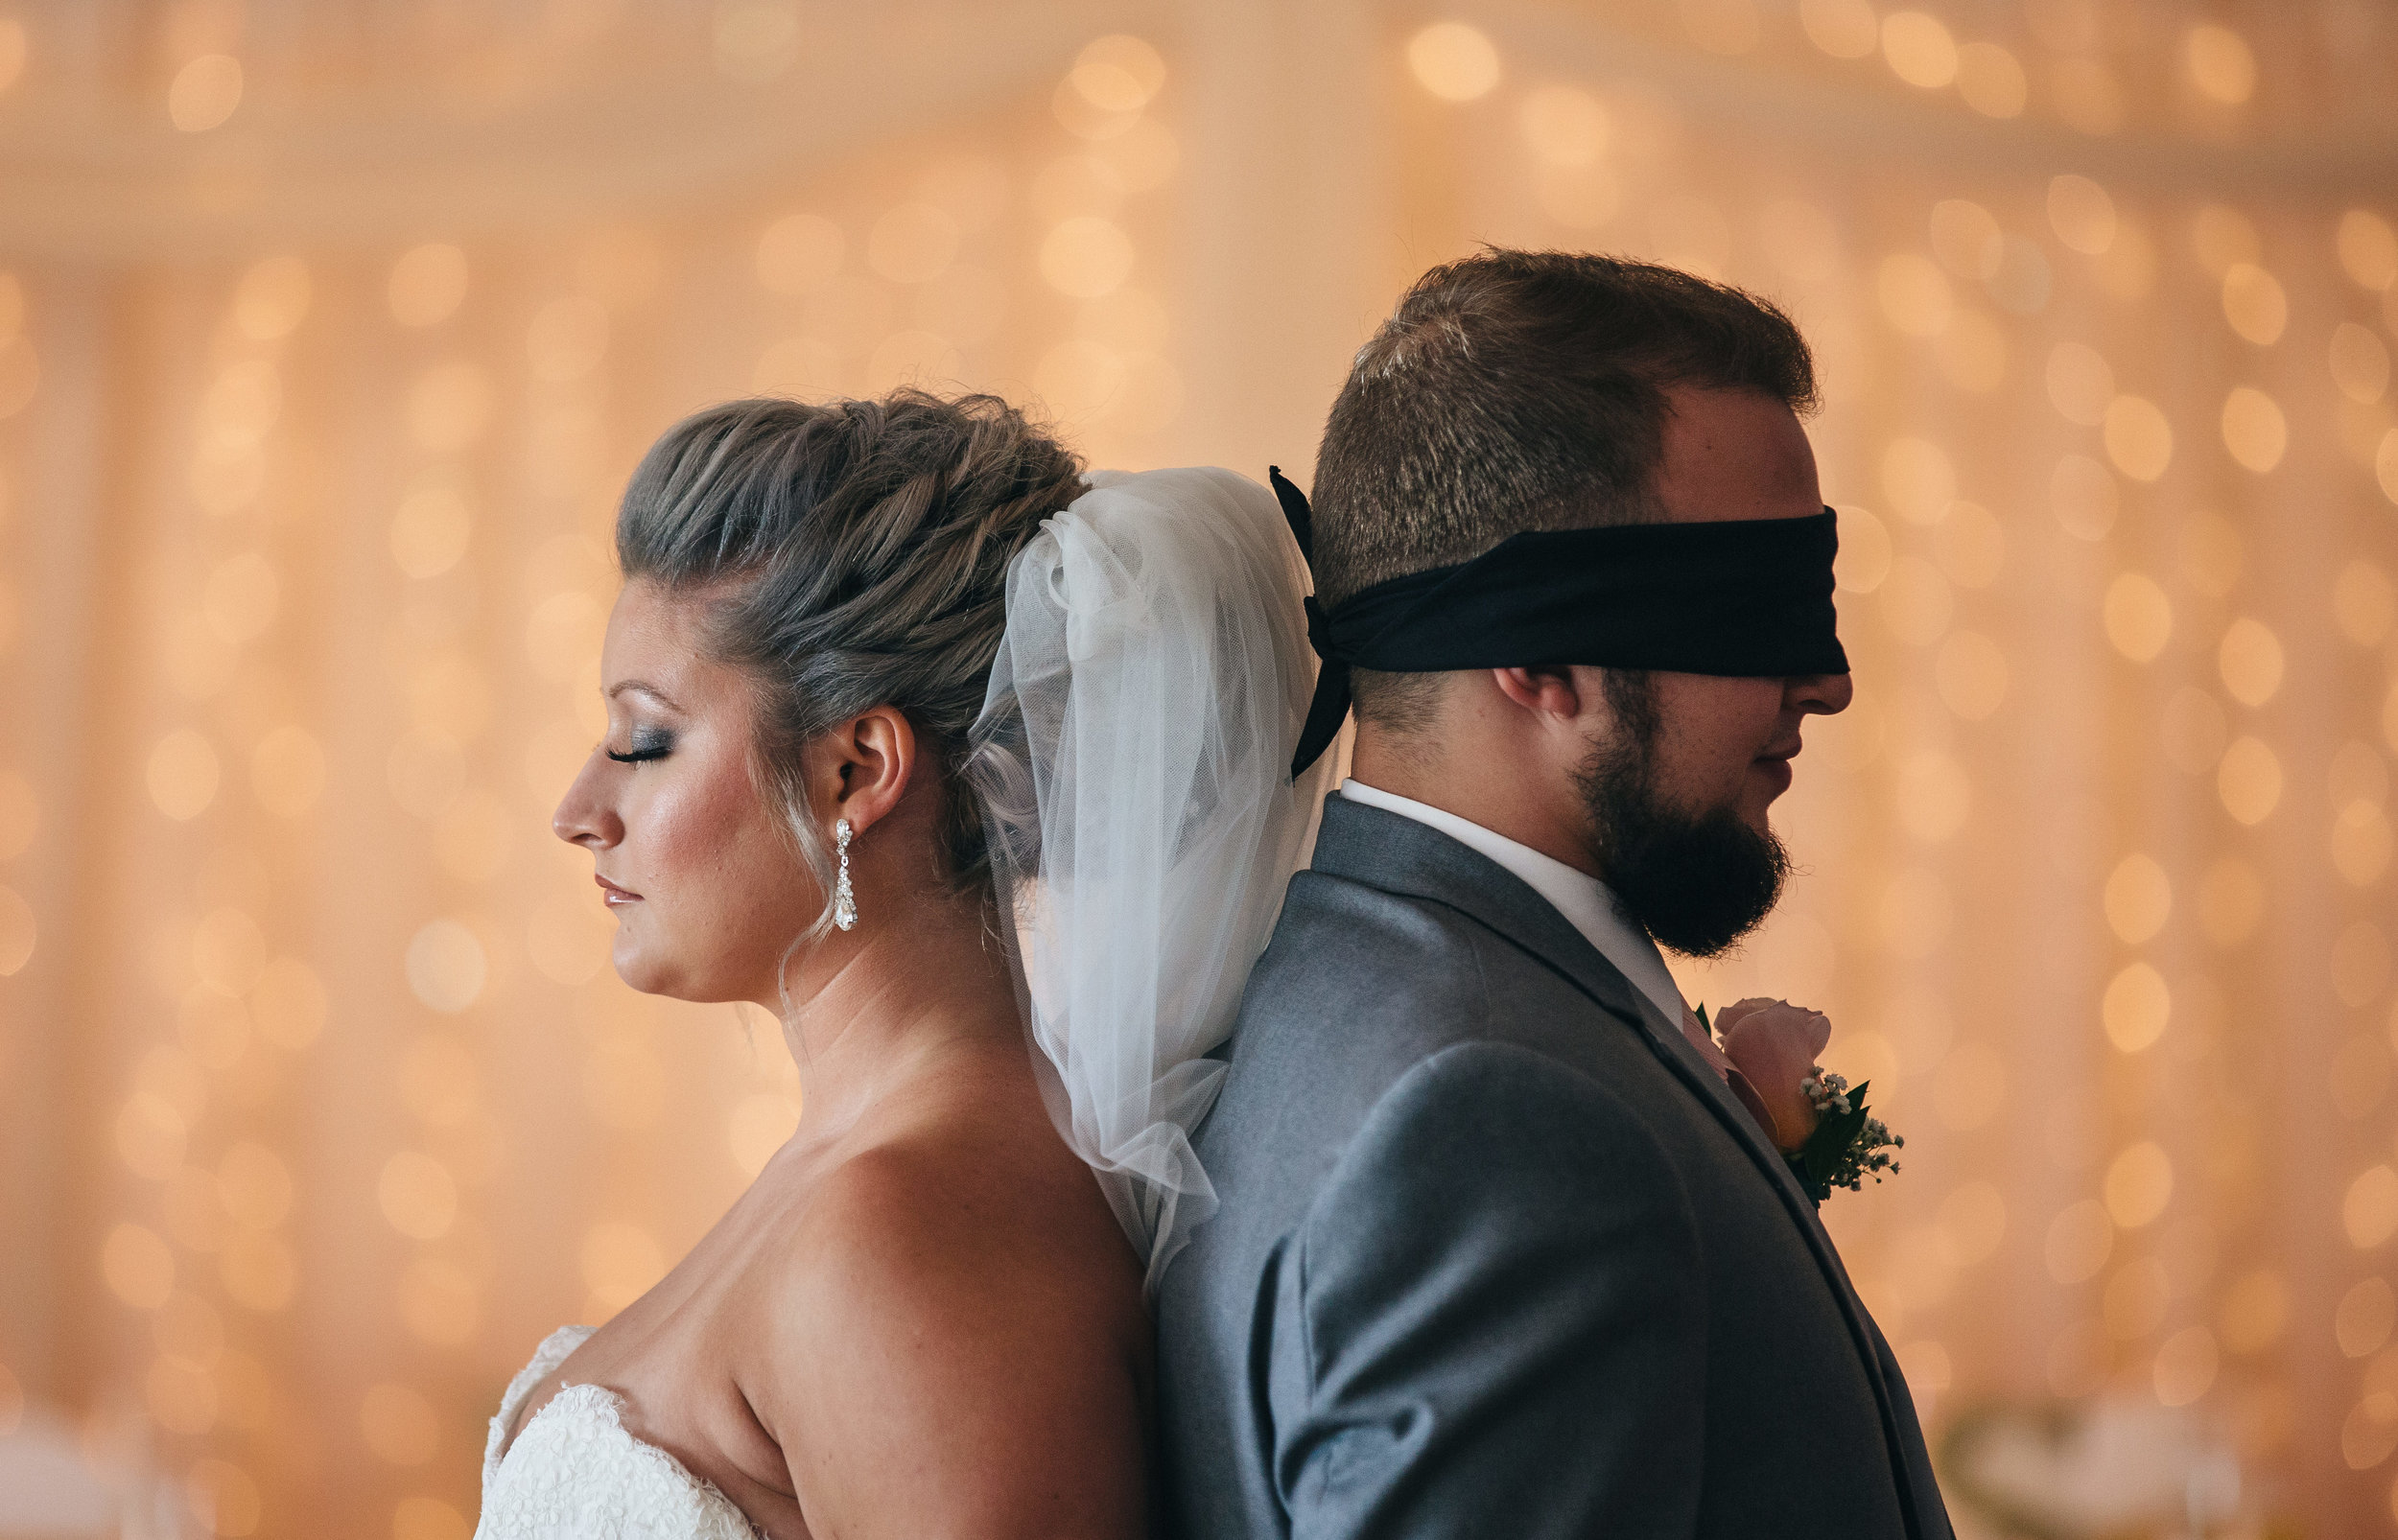 Bride and groom do blind prayer on wedding day at Stone Ridge Golf Club.